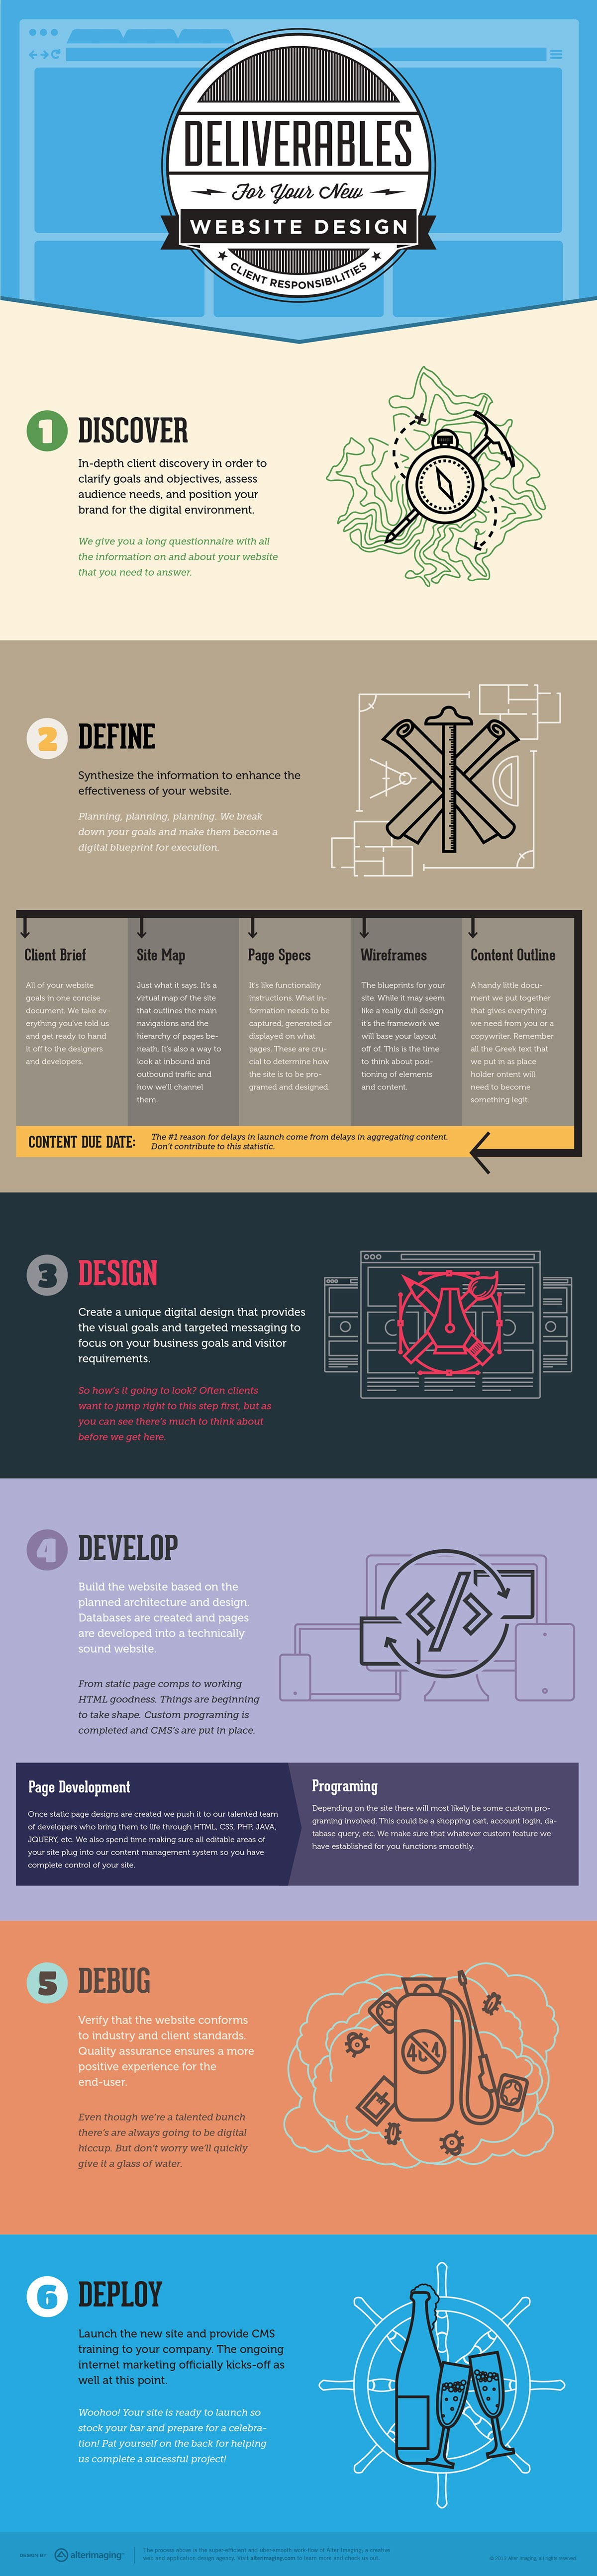 6-Steps-To-A-Successful-Web-Design #Infographic